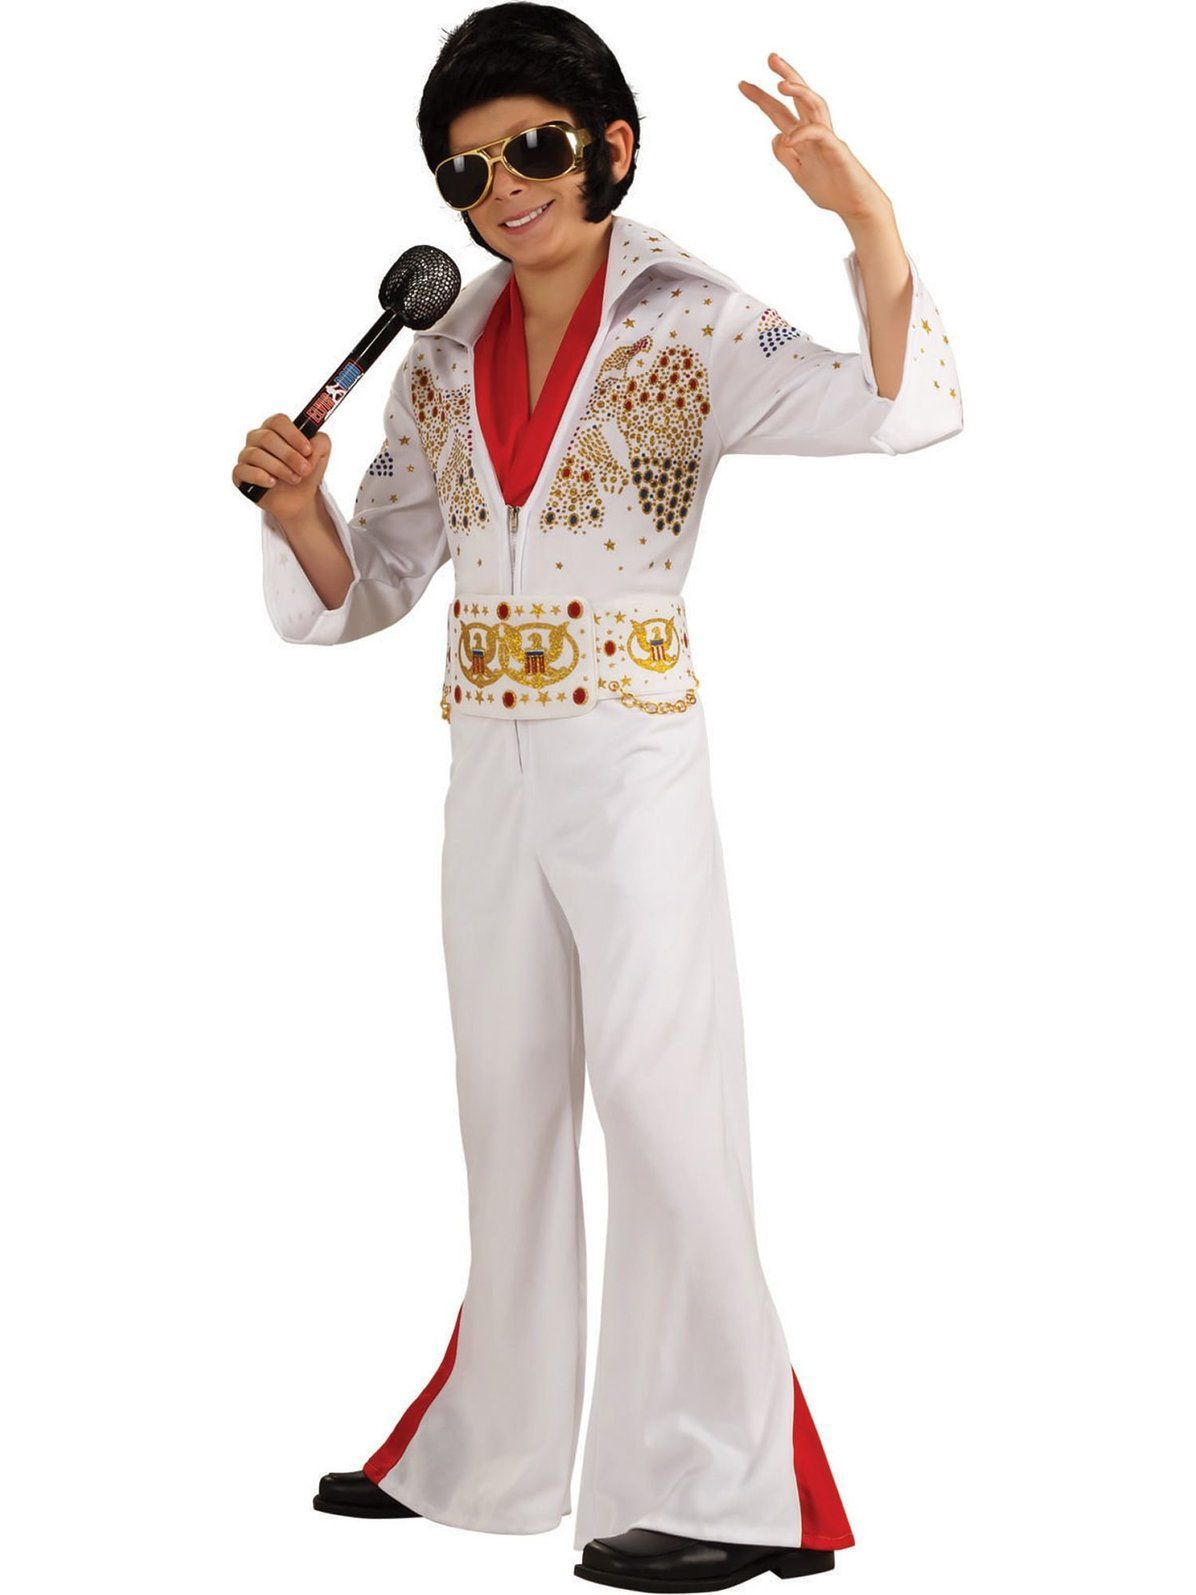 Deluxe Elvis Costume for Kids Elvis costume, Costumes